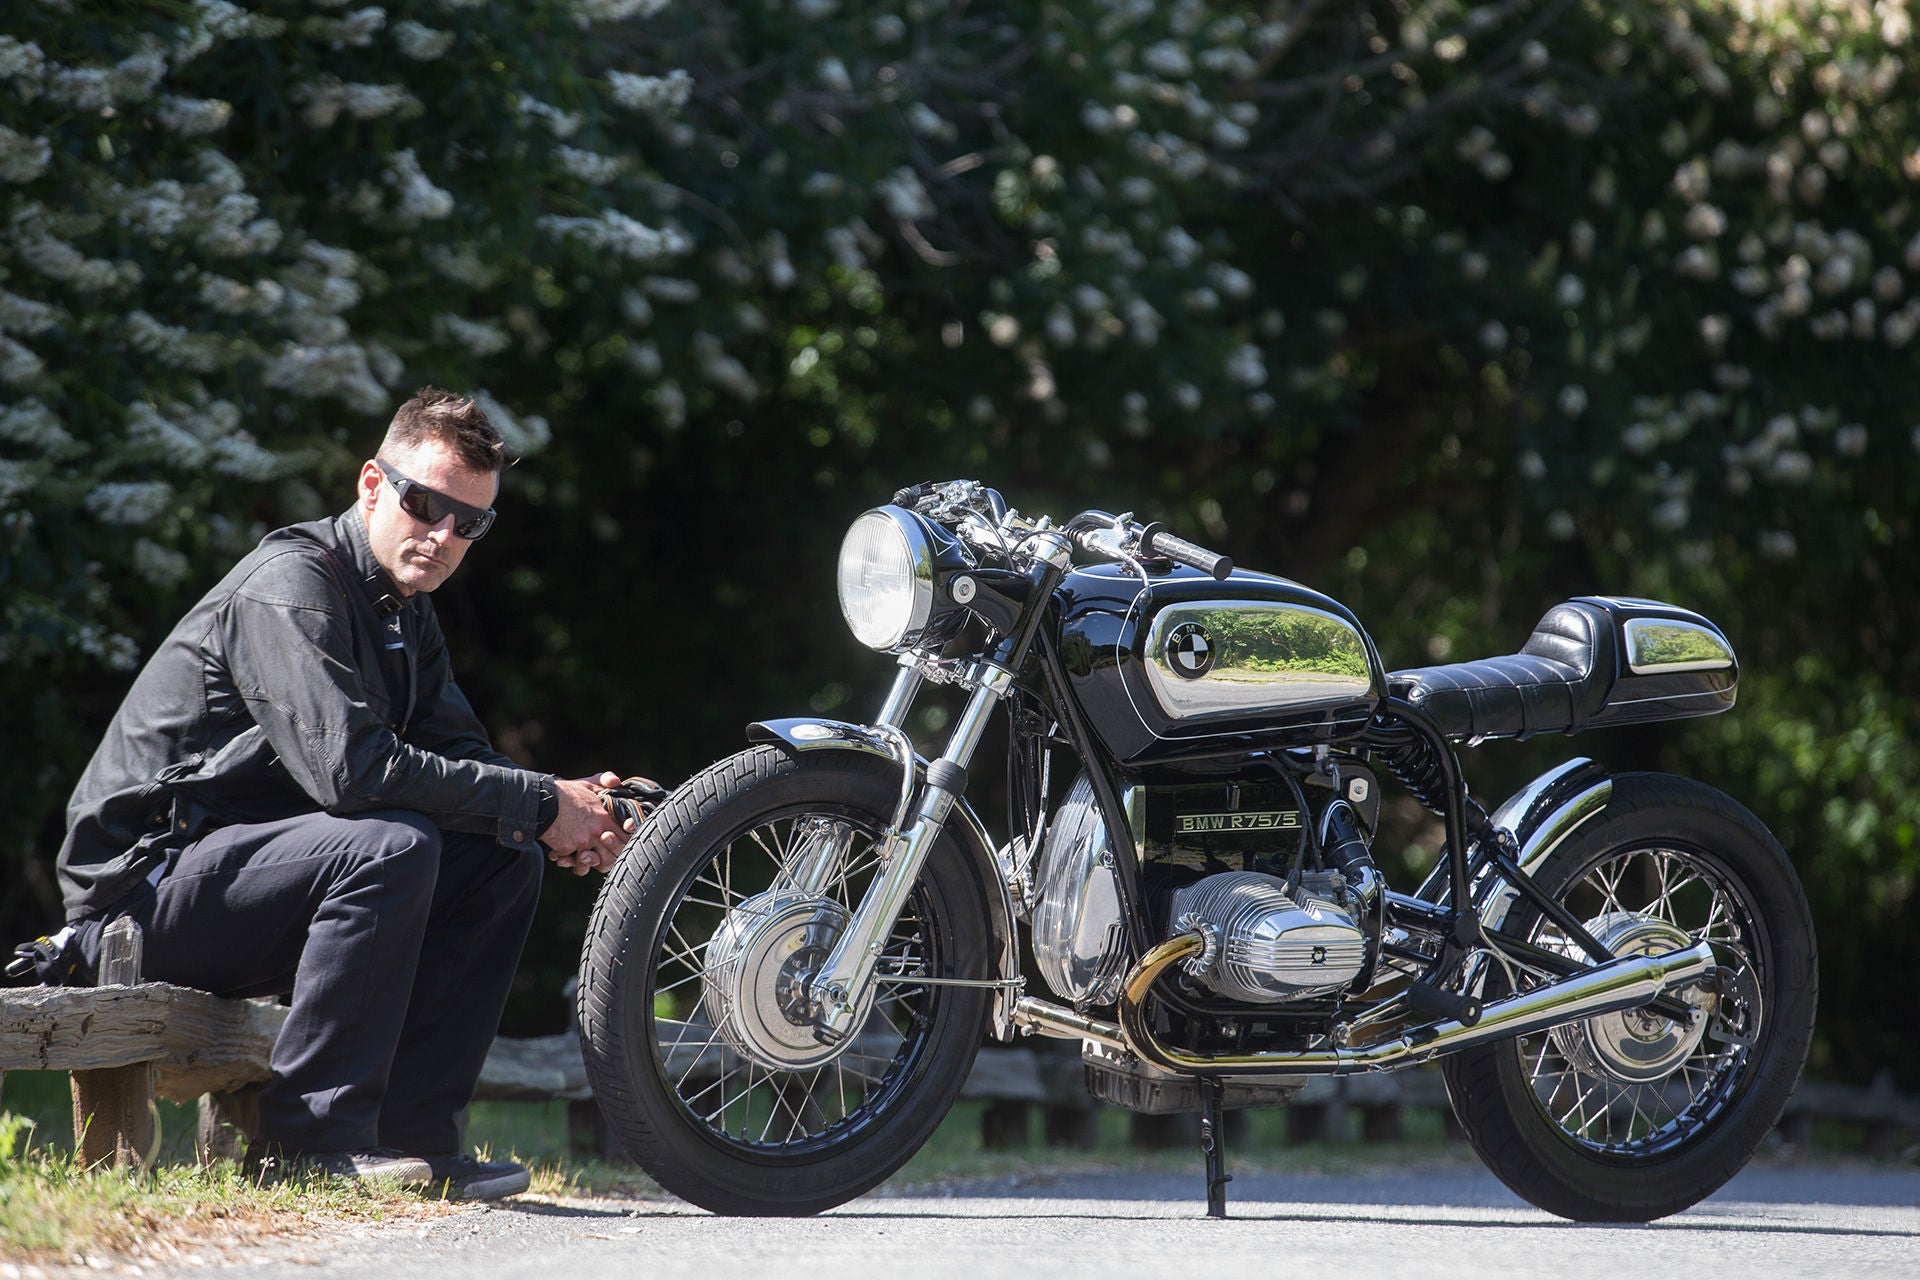 Bryan Fuller Fuller Moto | BMW R75-5 Cafe Racer Bavarian Knight Cycle World